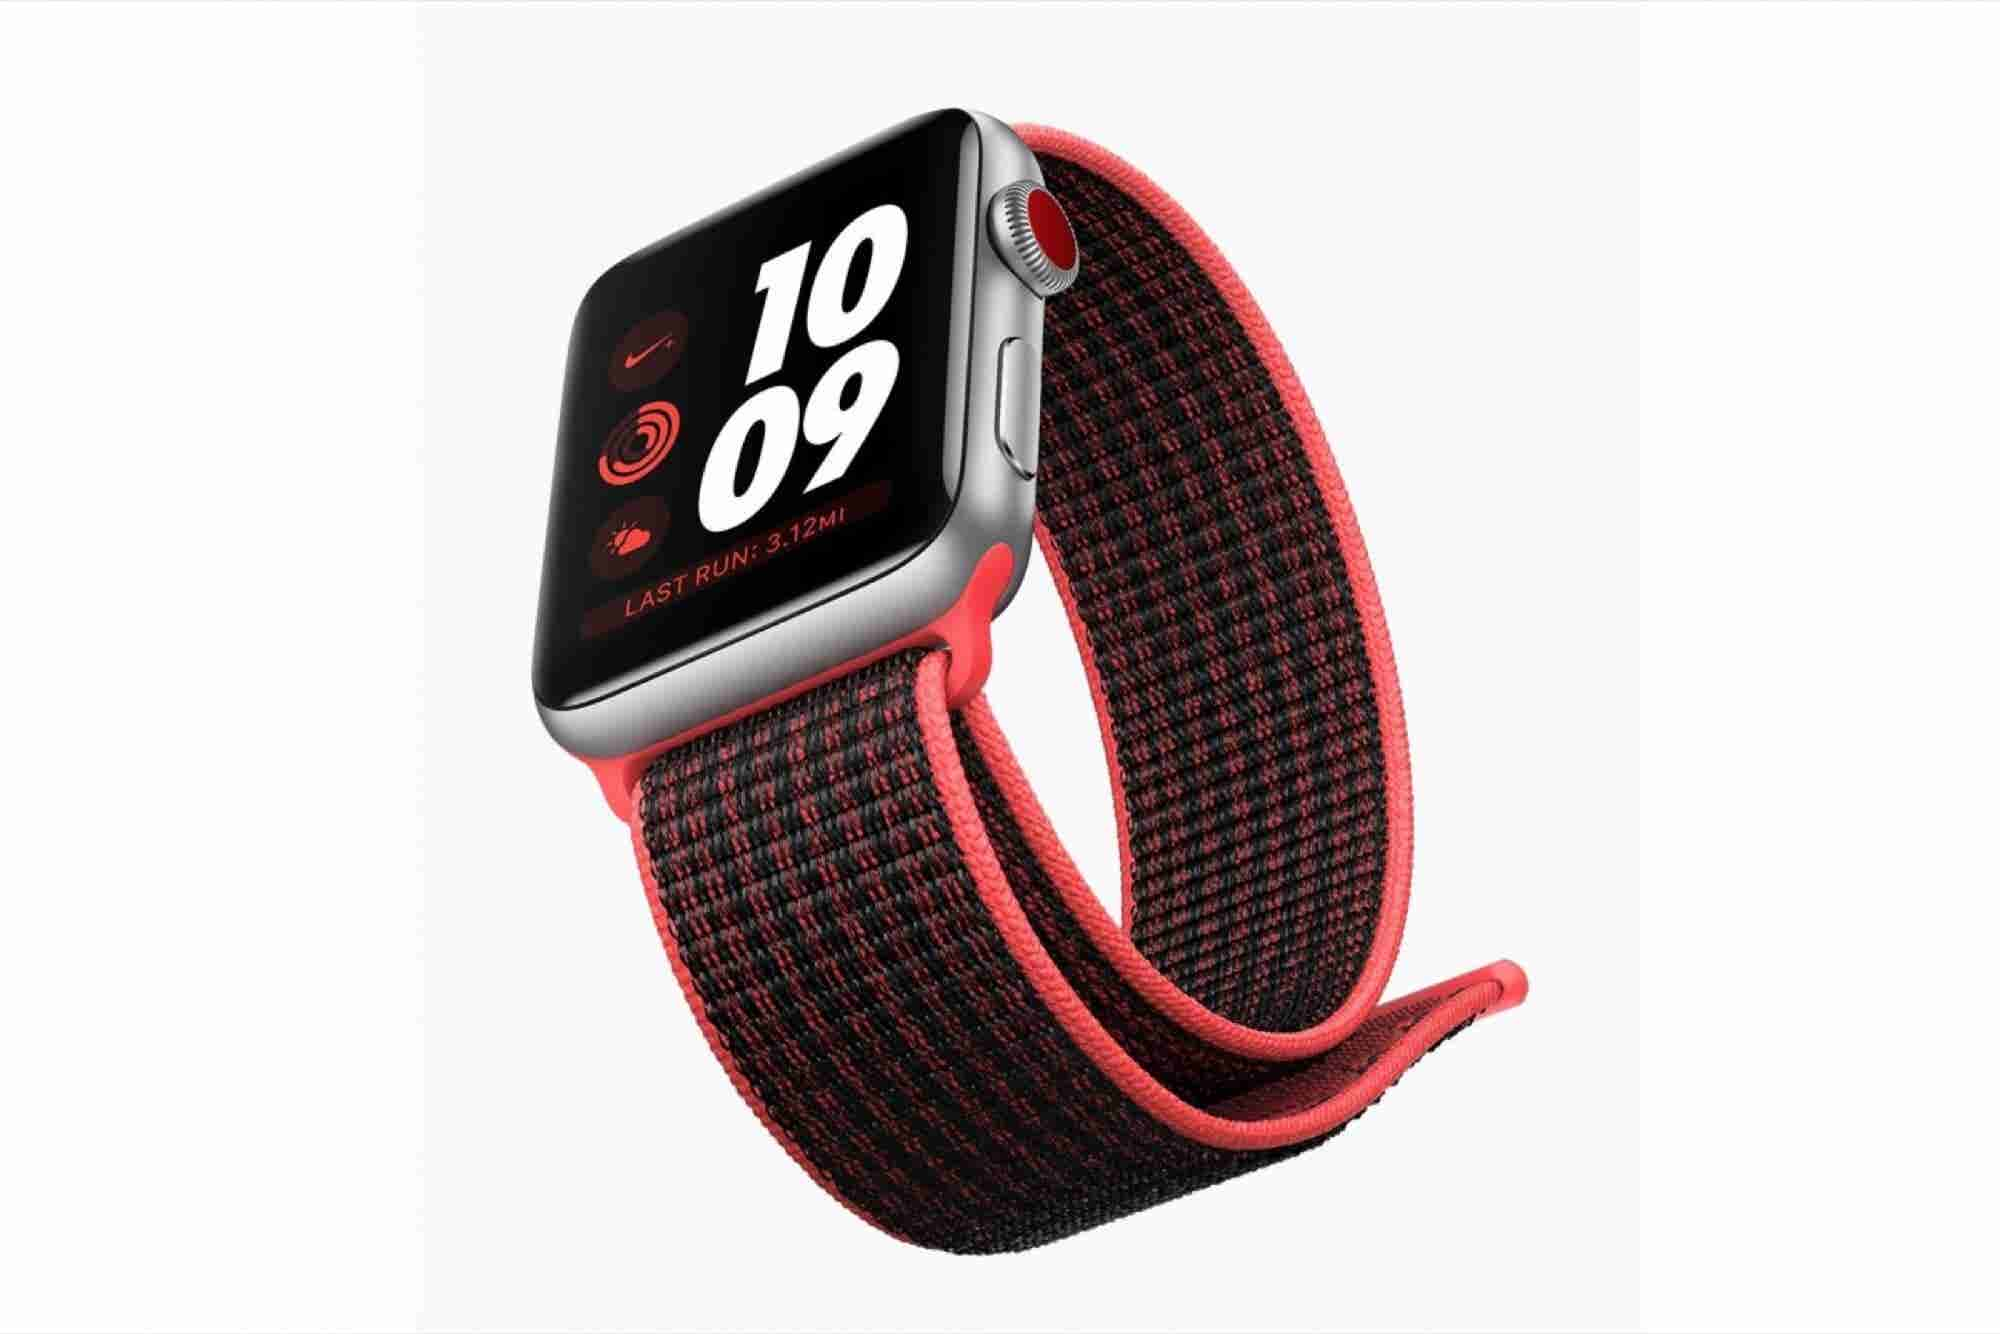 Check Out the Redesigned Apple Watch